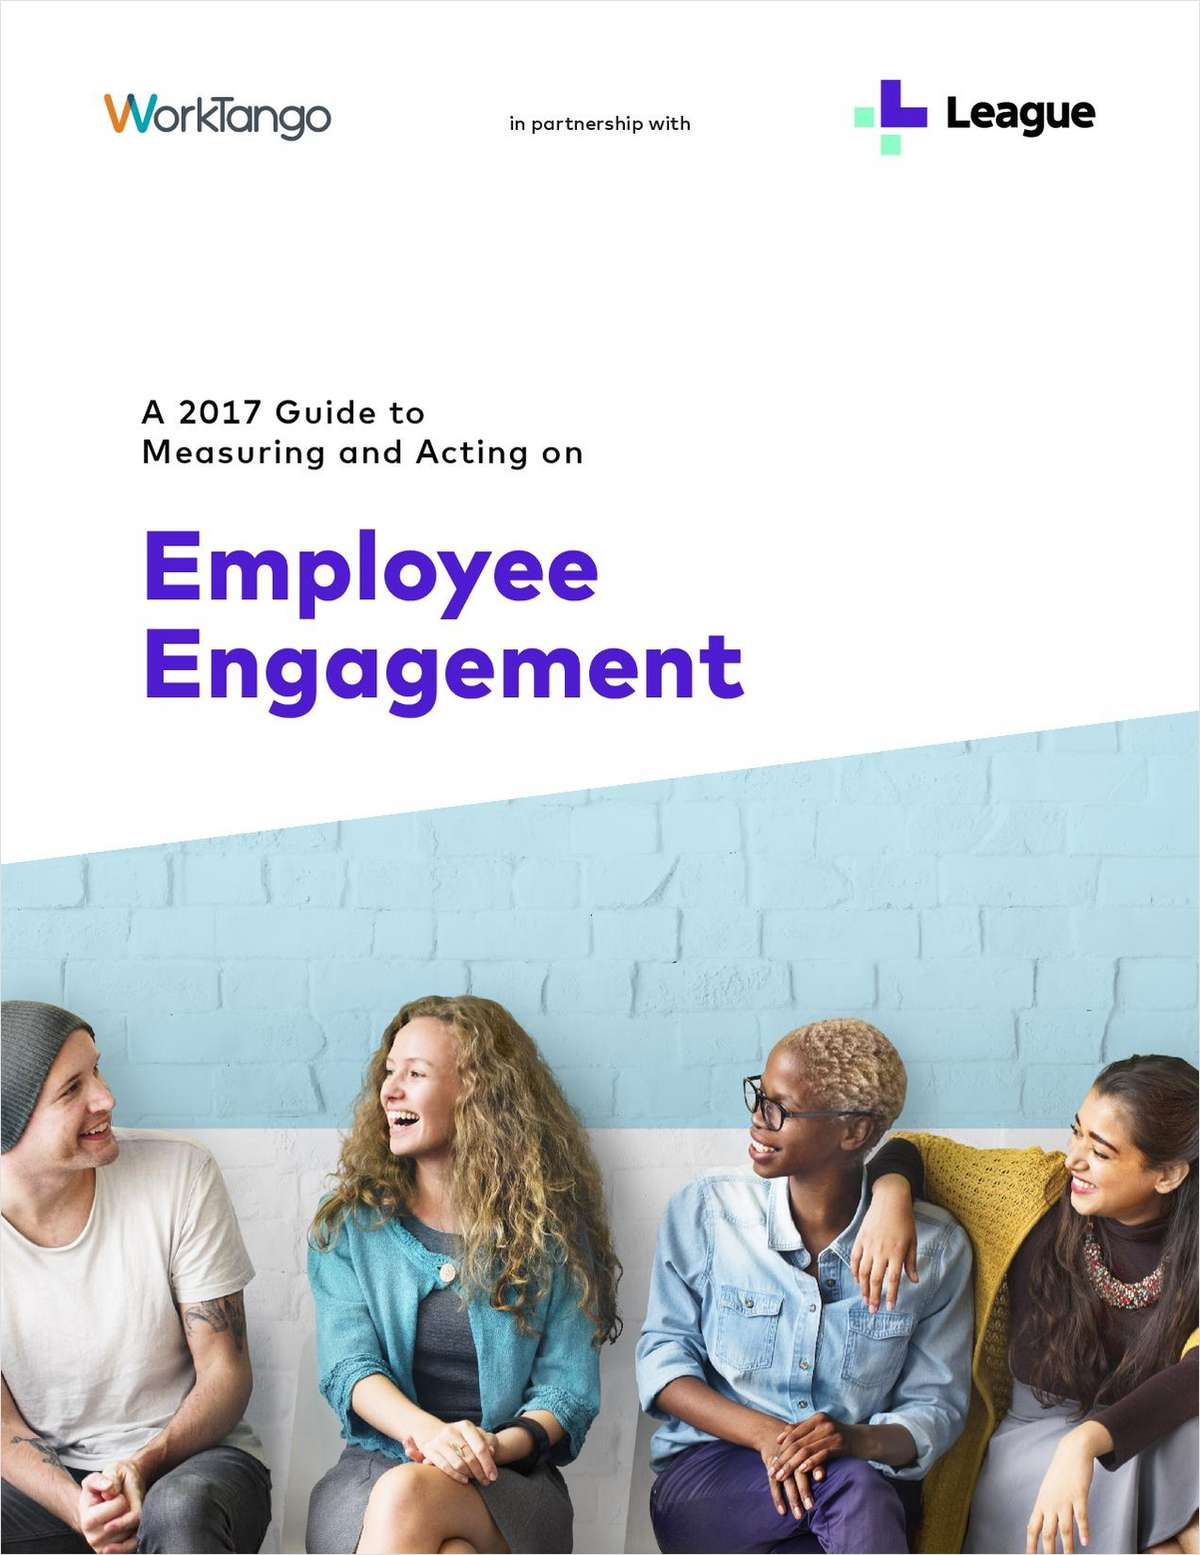 A 2017 Guide to Measuring and Acting on Employee Engagement